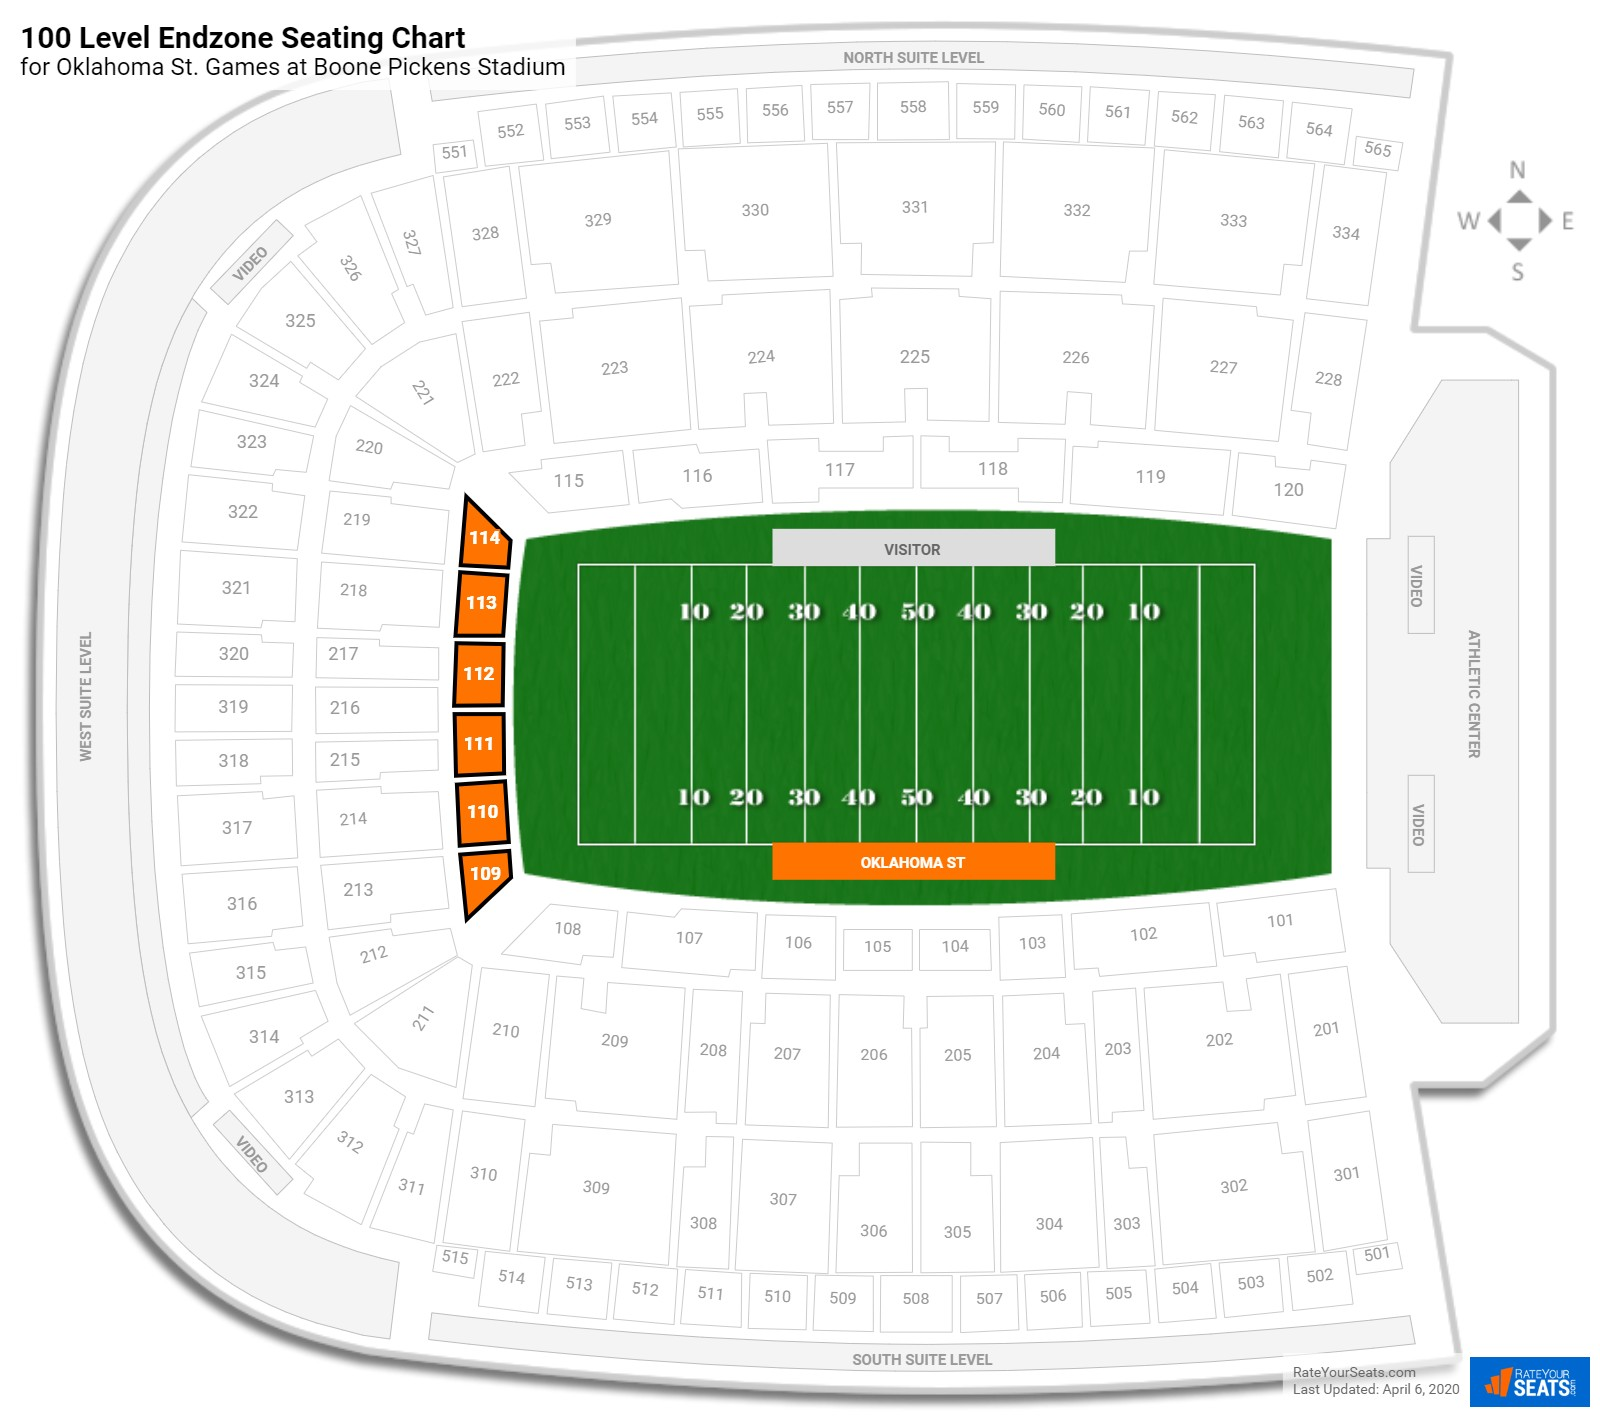 Boone Pickens Stadium 100 Level Endzone seating chart